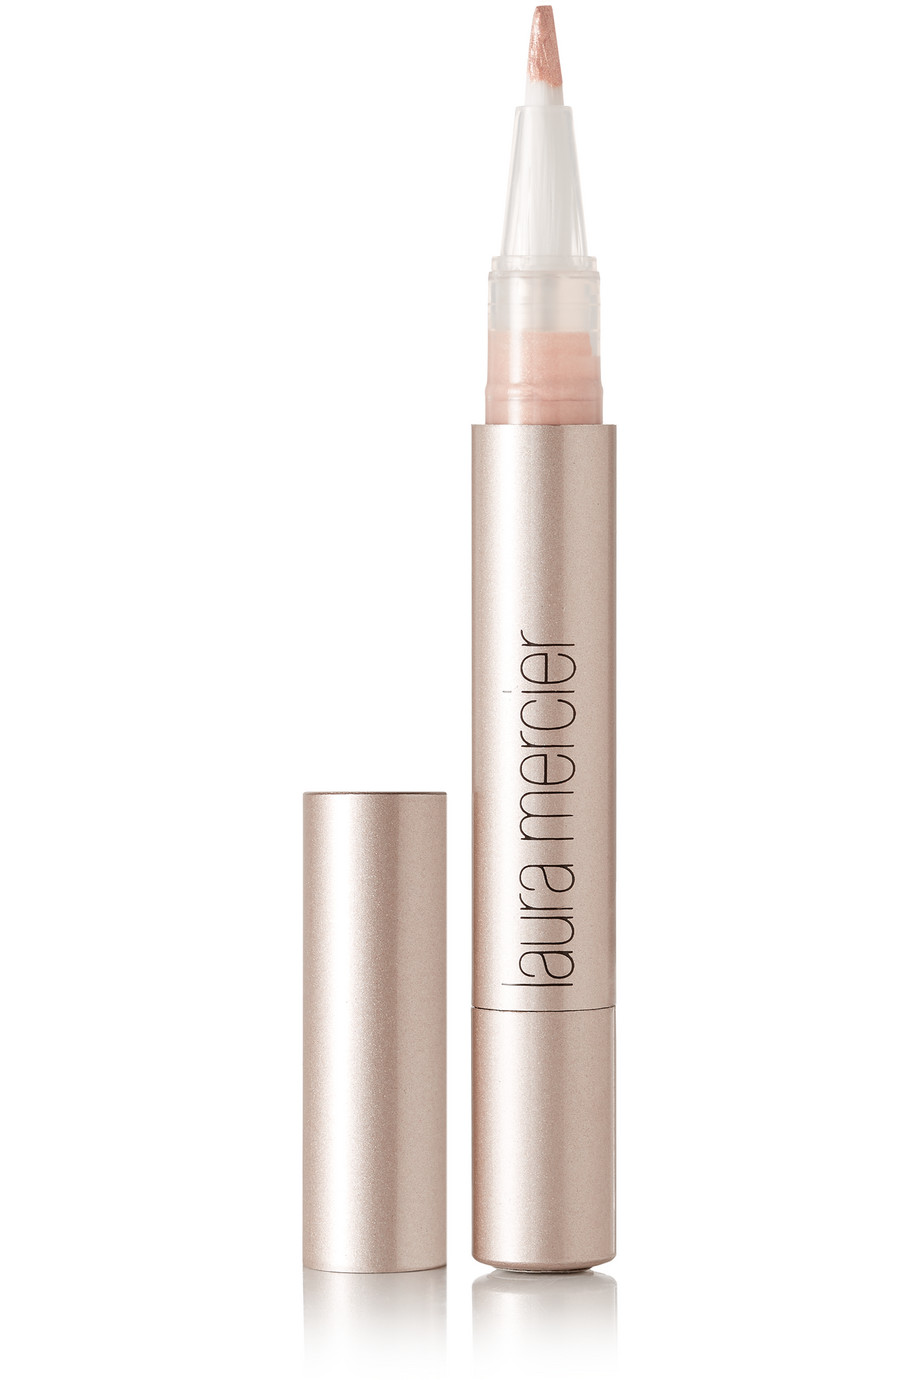 Laura Mercier Secret Brightener Pen - No. 1